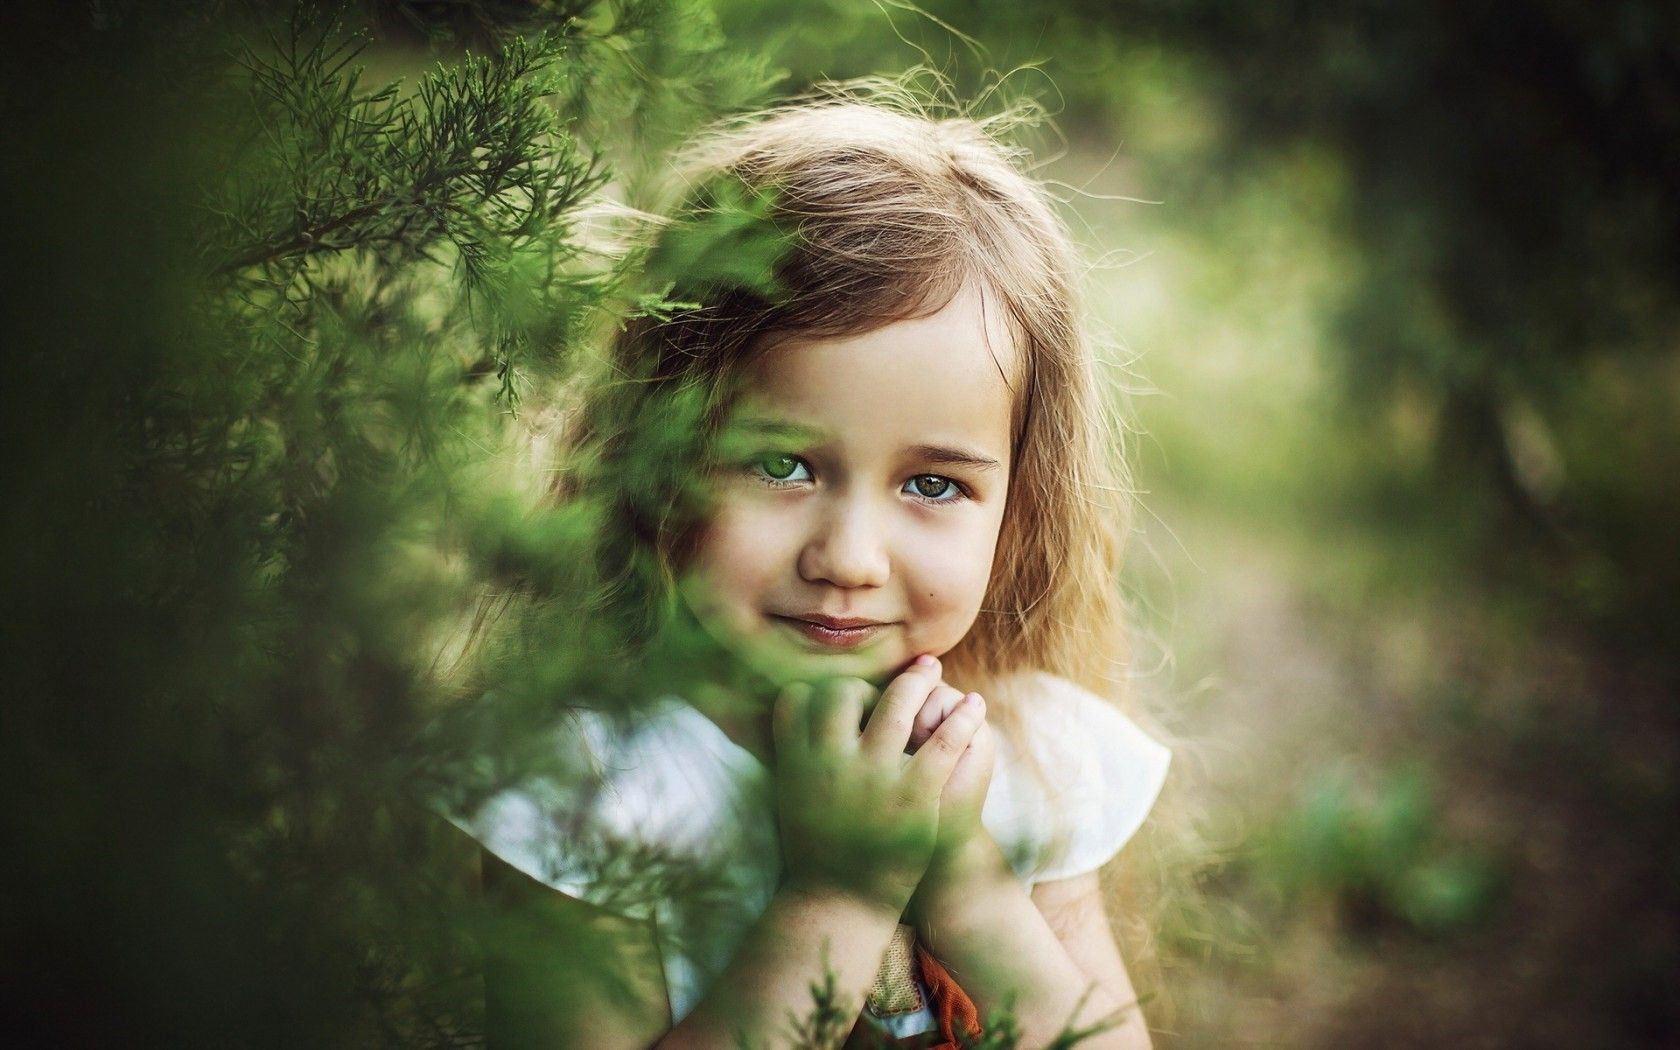 Cute and sweet baby girl images download